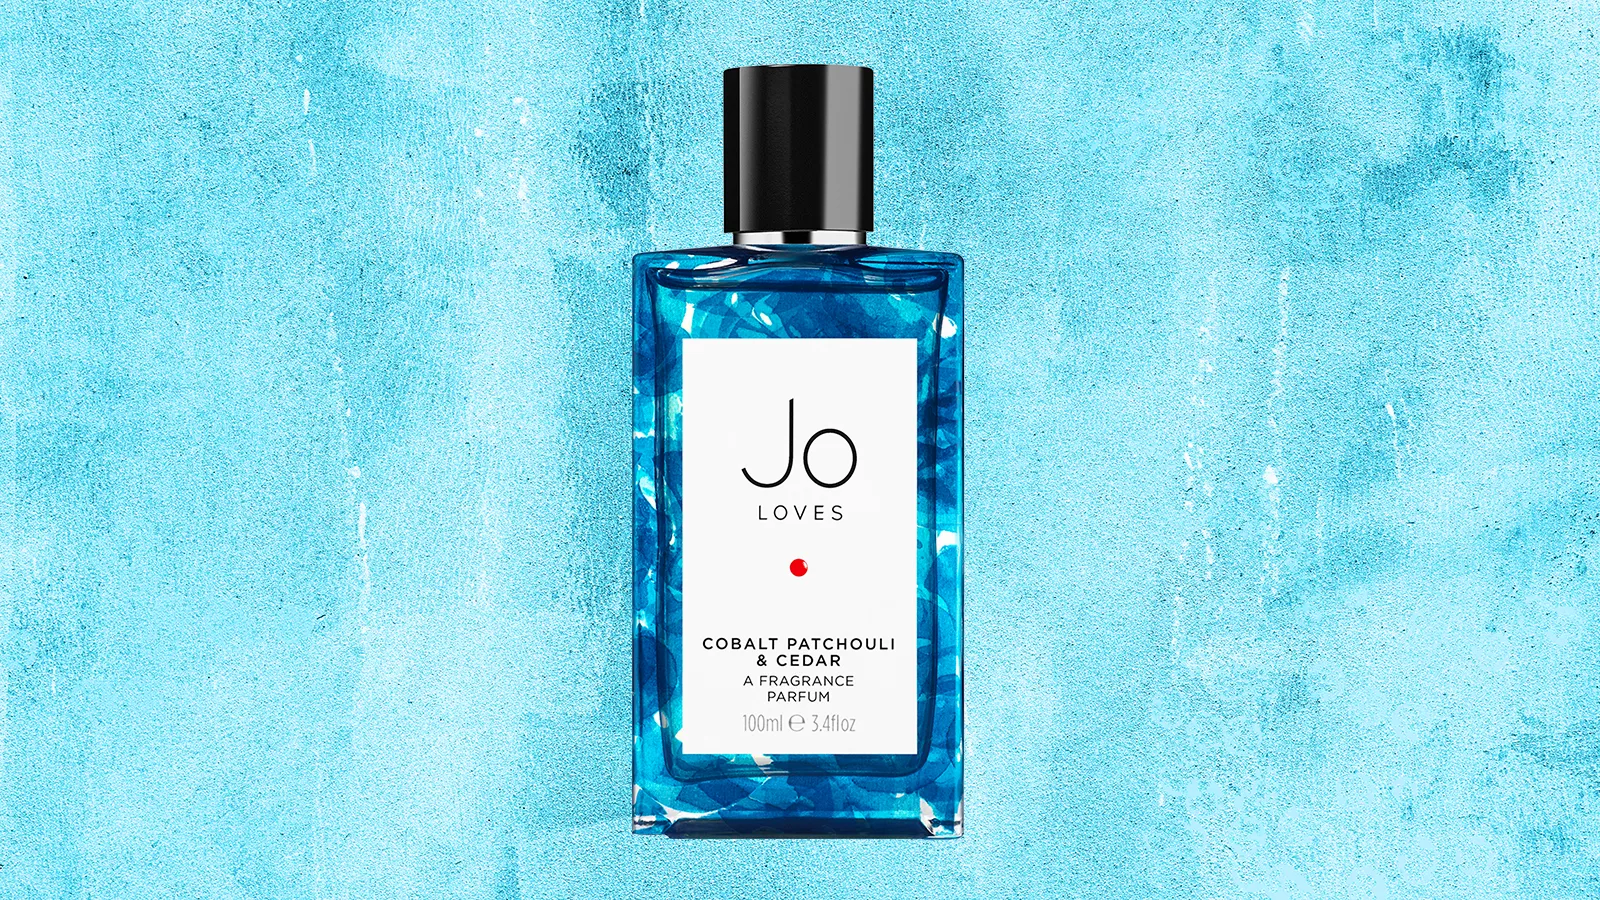 Jo Loves's new gorgeous and uplifting fragrance is transporting us to a sun-drenched beach